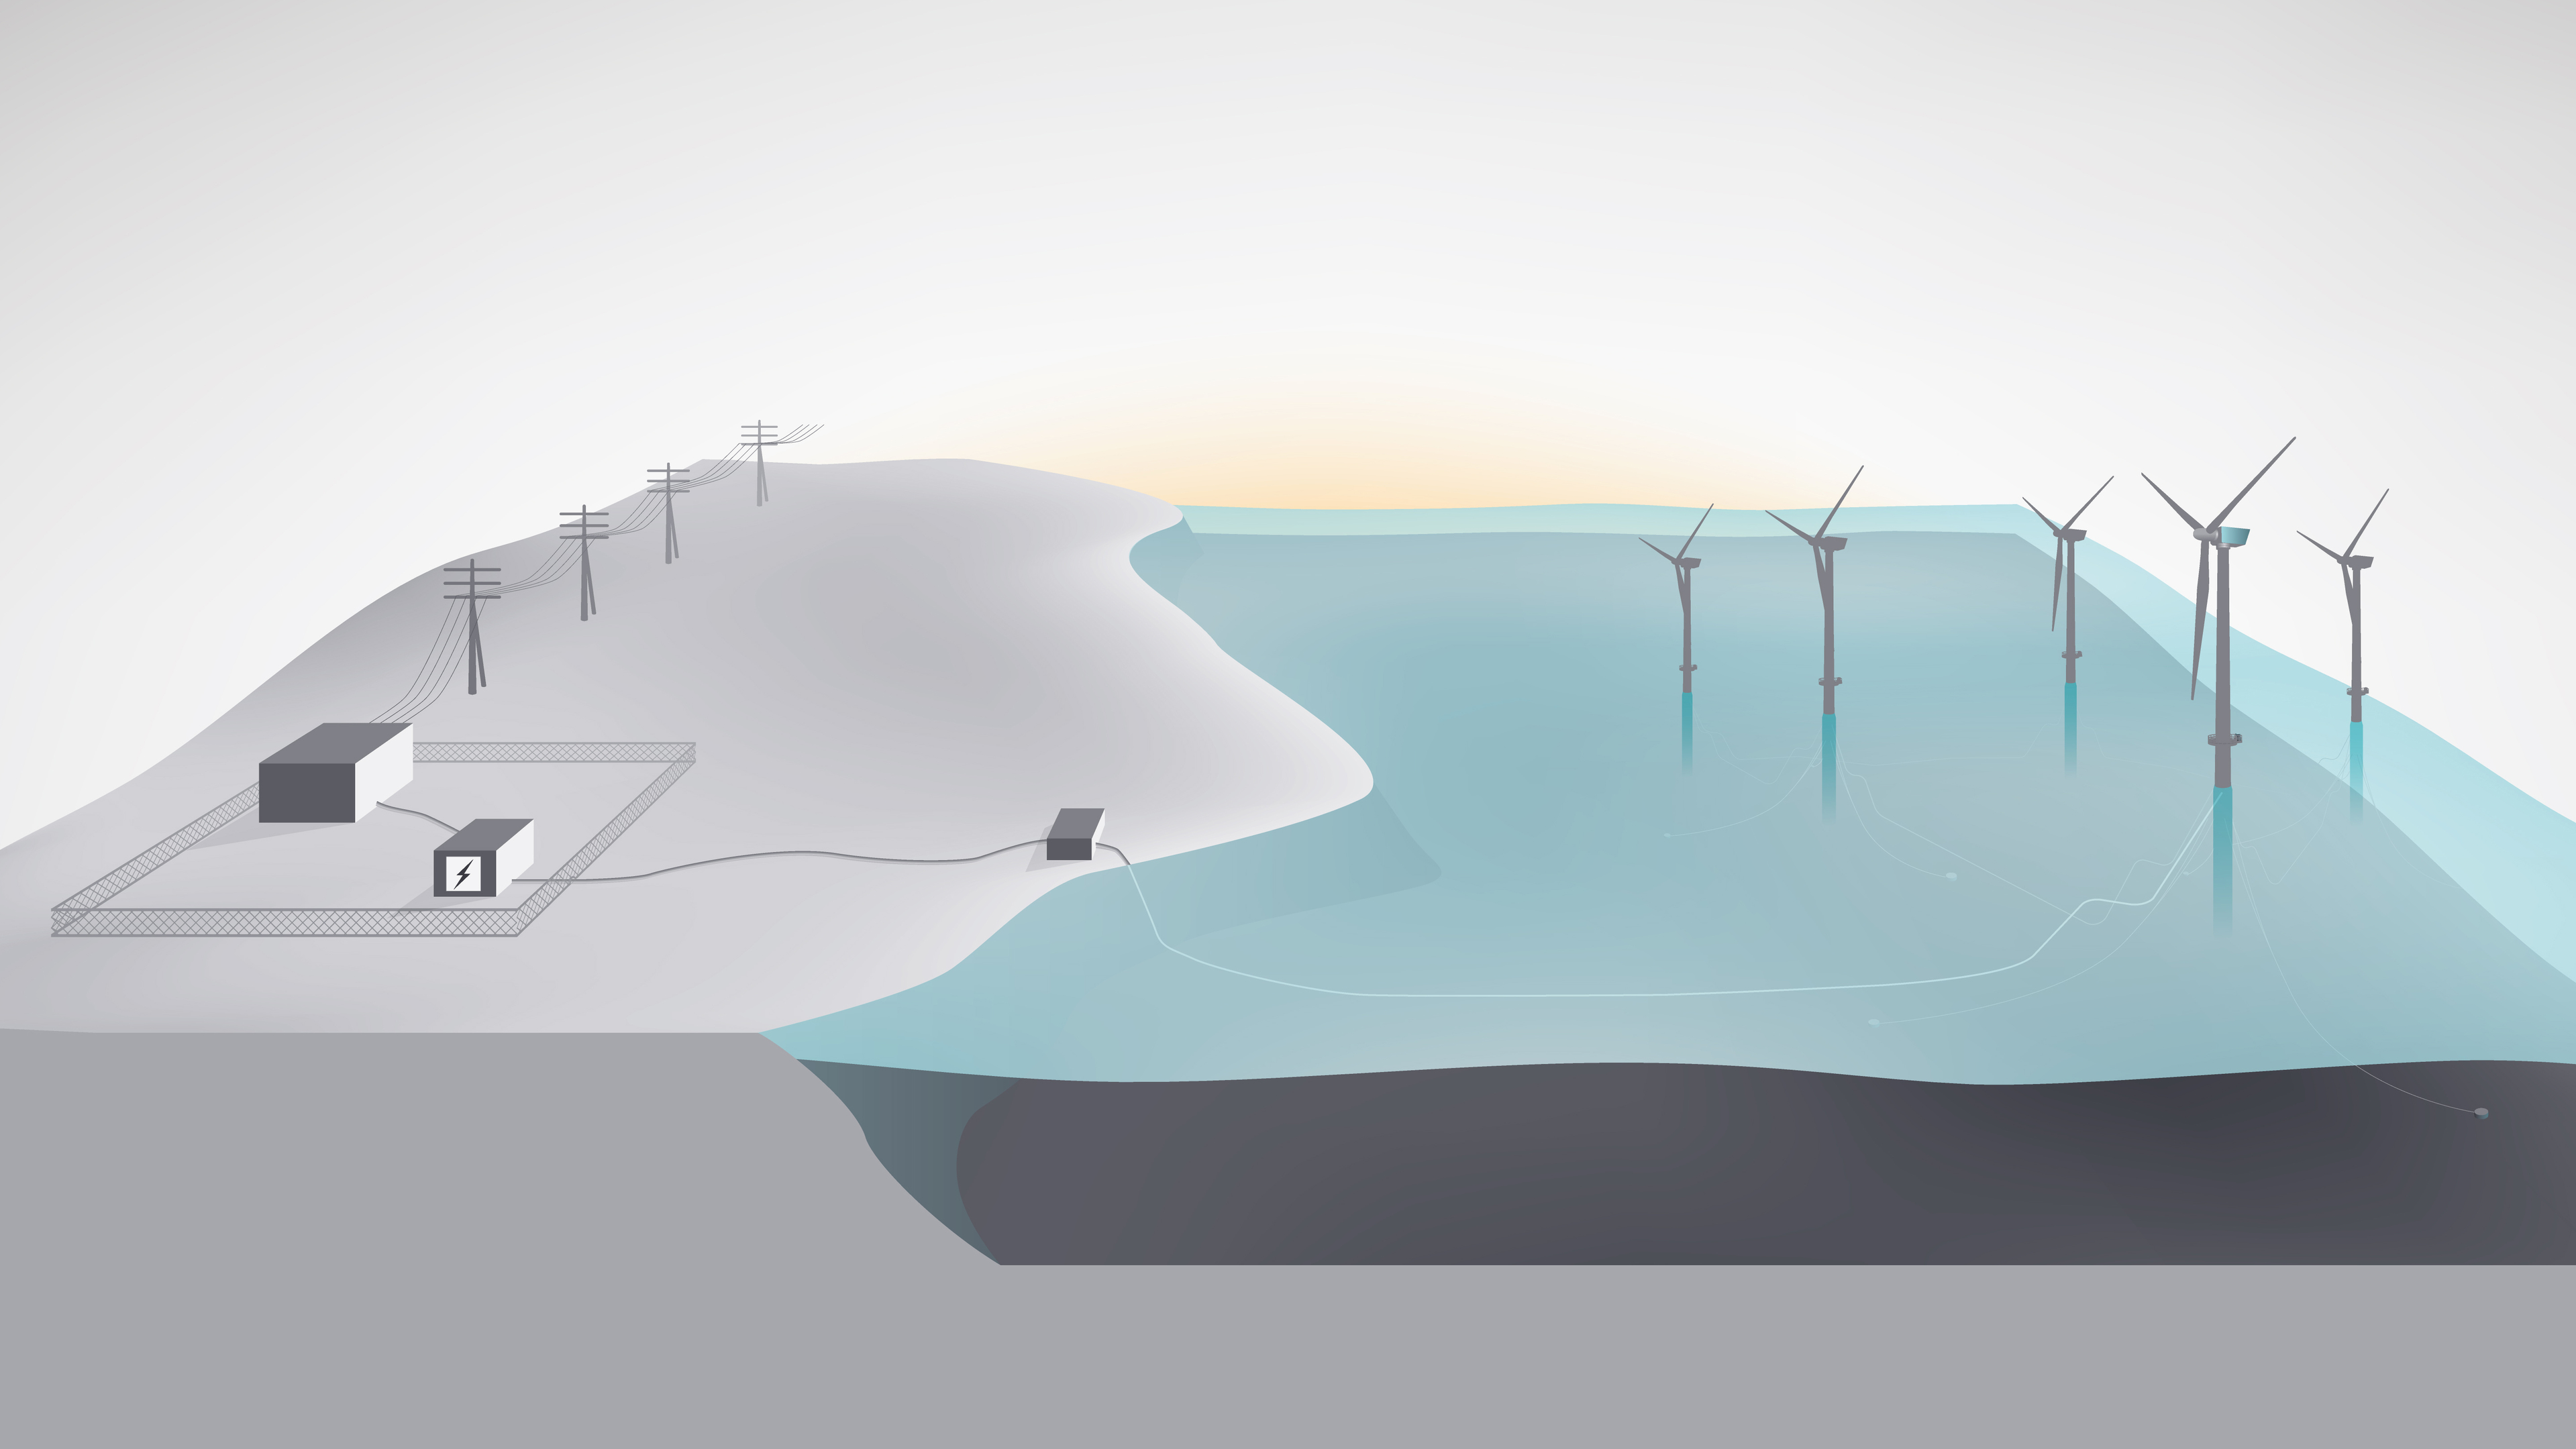 Statoil's Batwind will have enough power to power two million iPhones